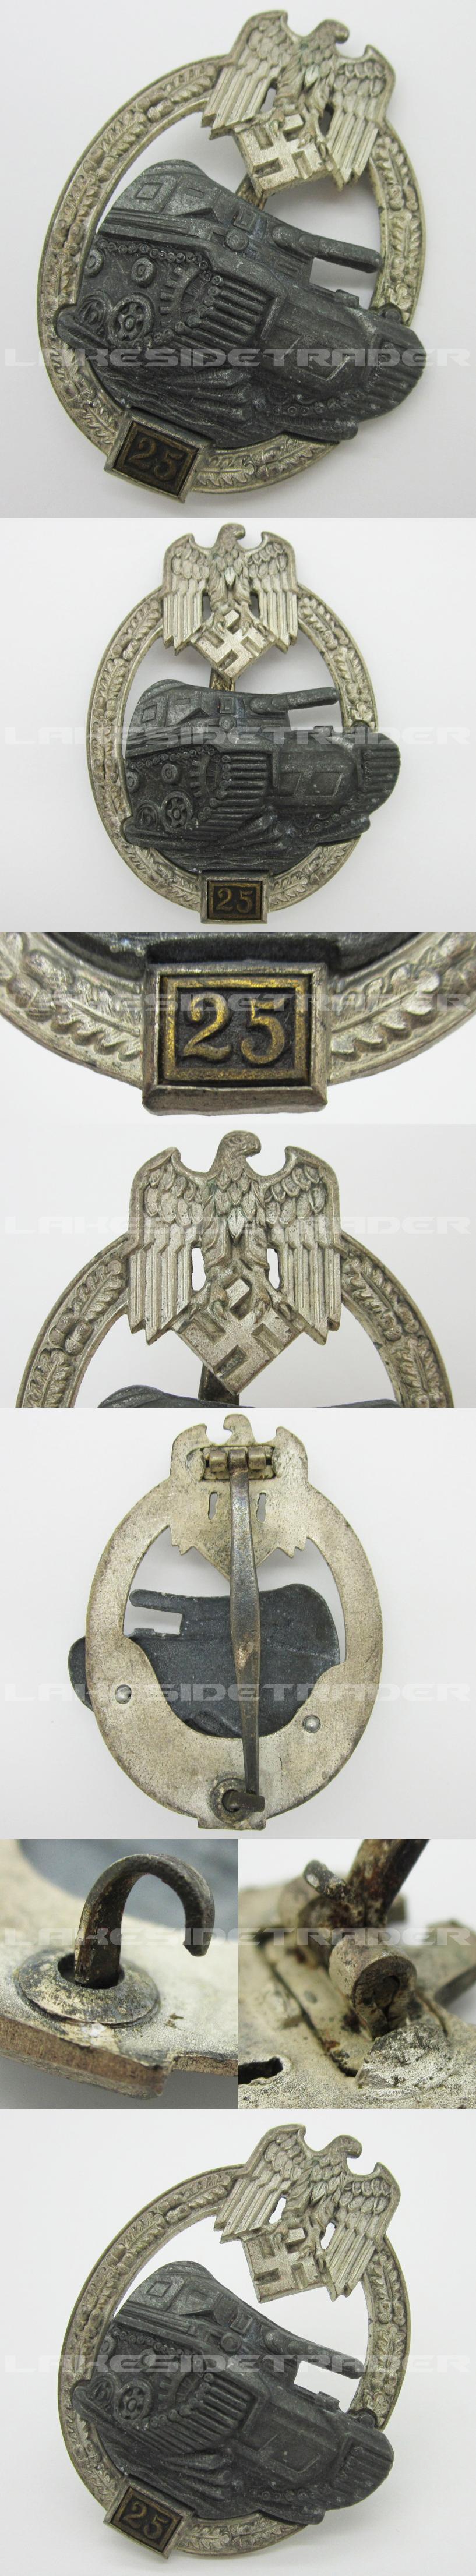 Grade II Silver Panzer Assault Badge by JFS